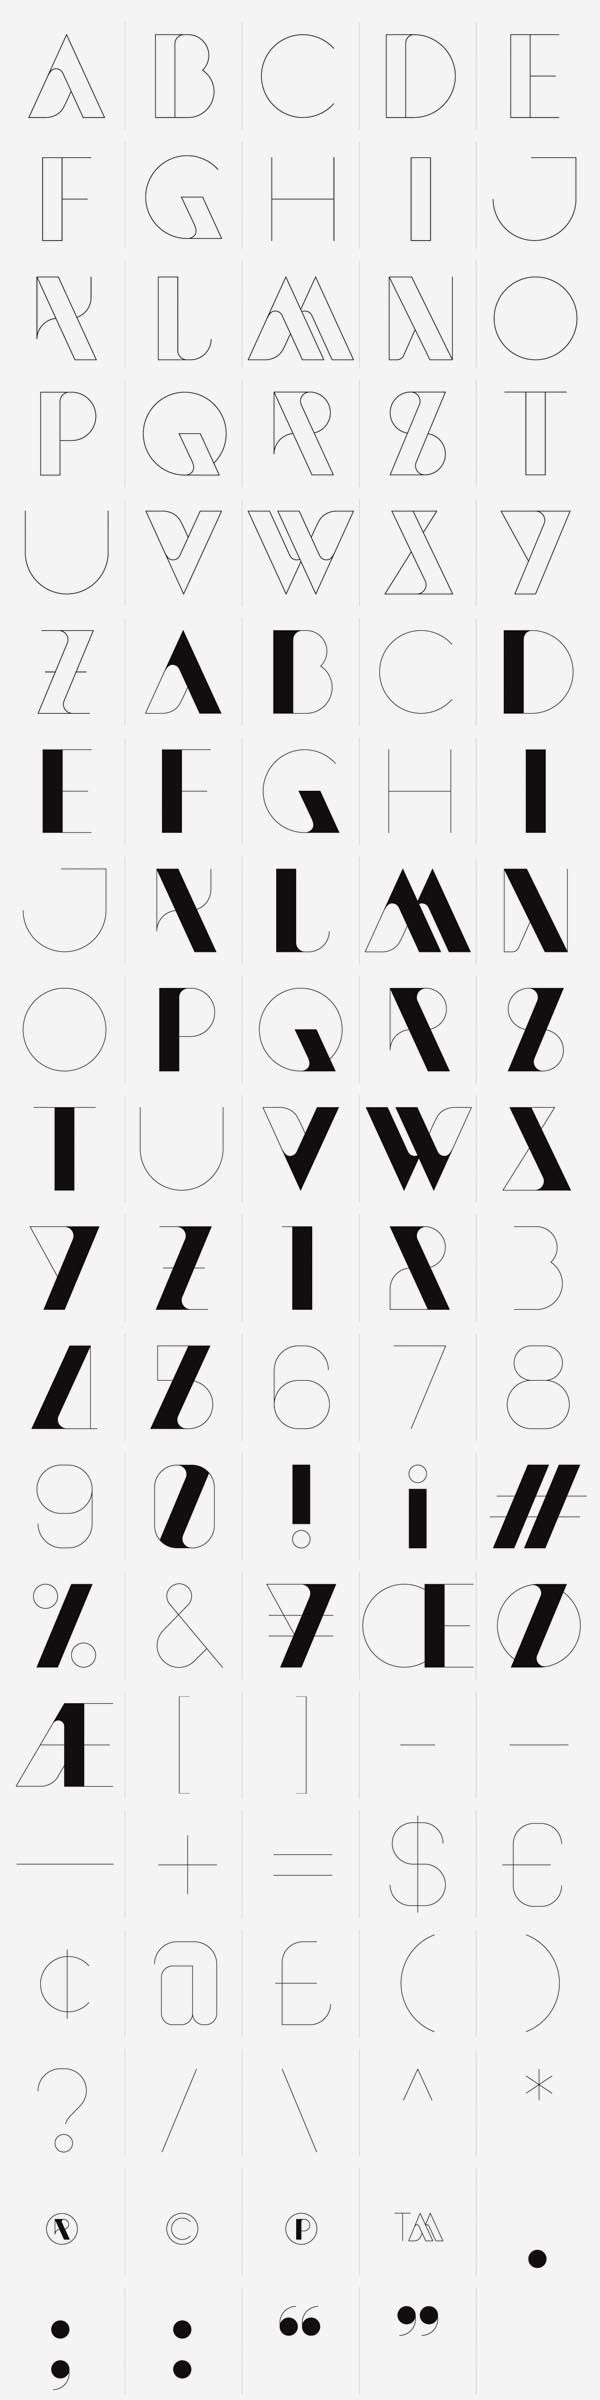 New Modern Typeface by Sawdust for HypeForType - WE AND THE COLOR